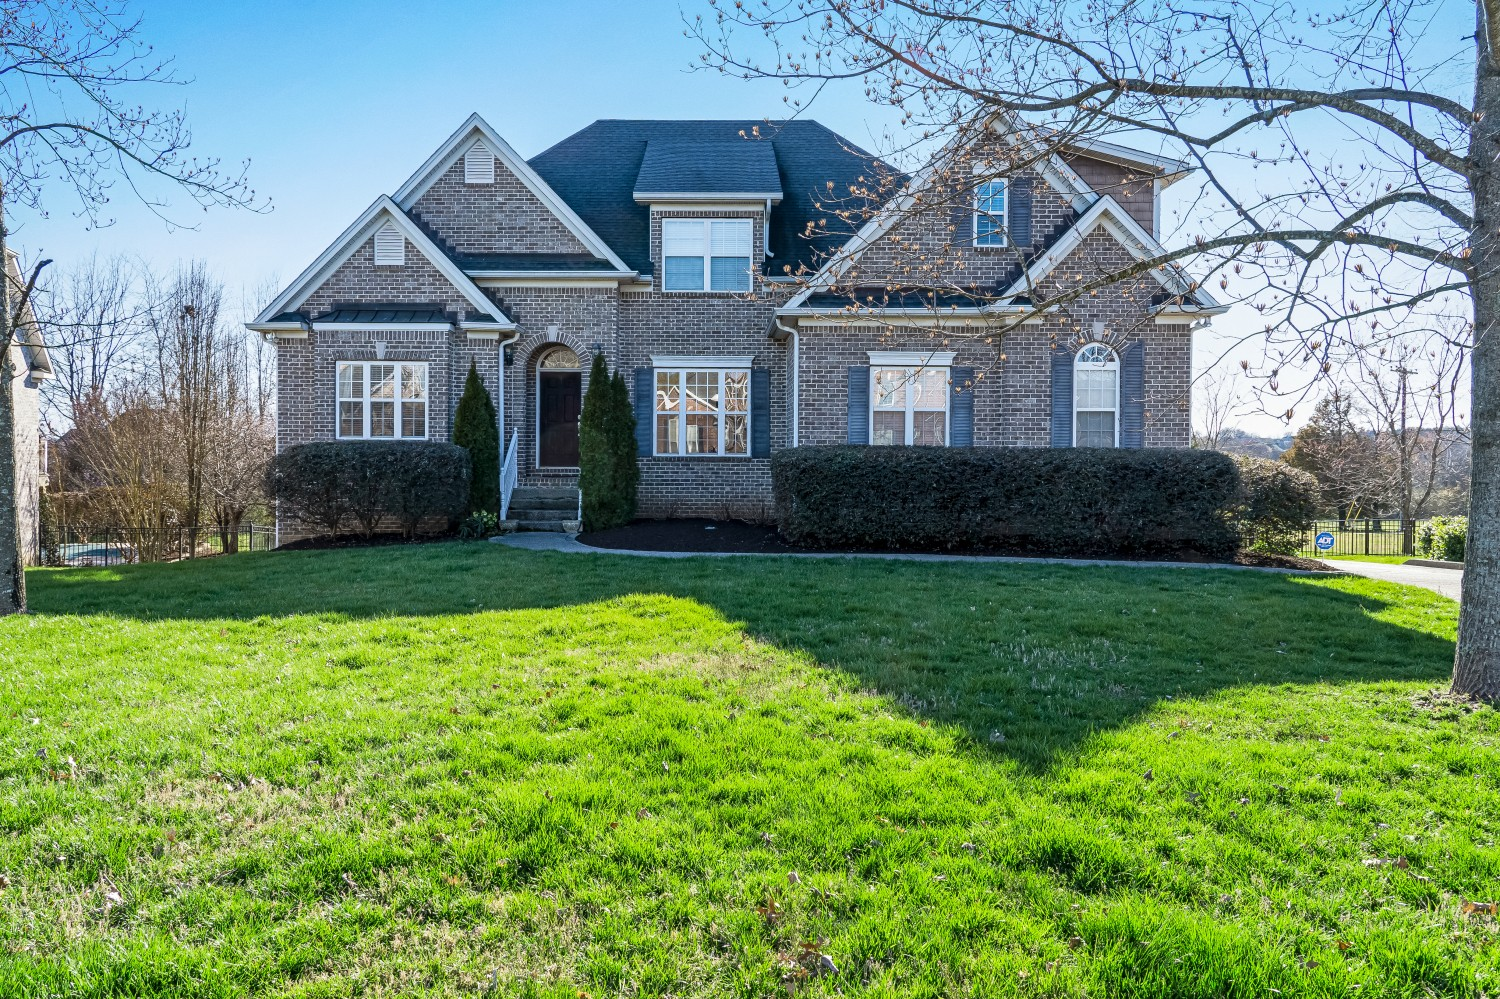 1623 Fair House Rd, Spring Hill, TN 37174 - Spring Hill, TN real estate listing